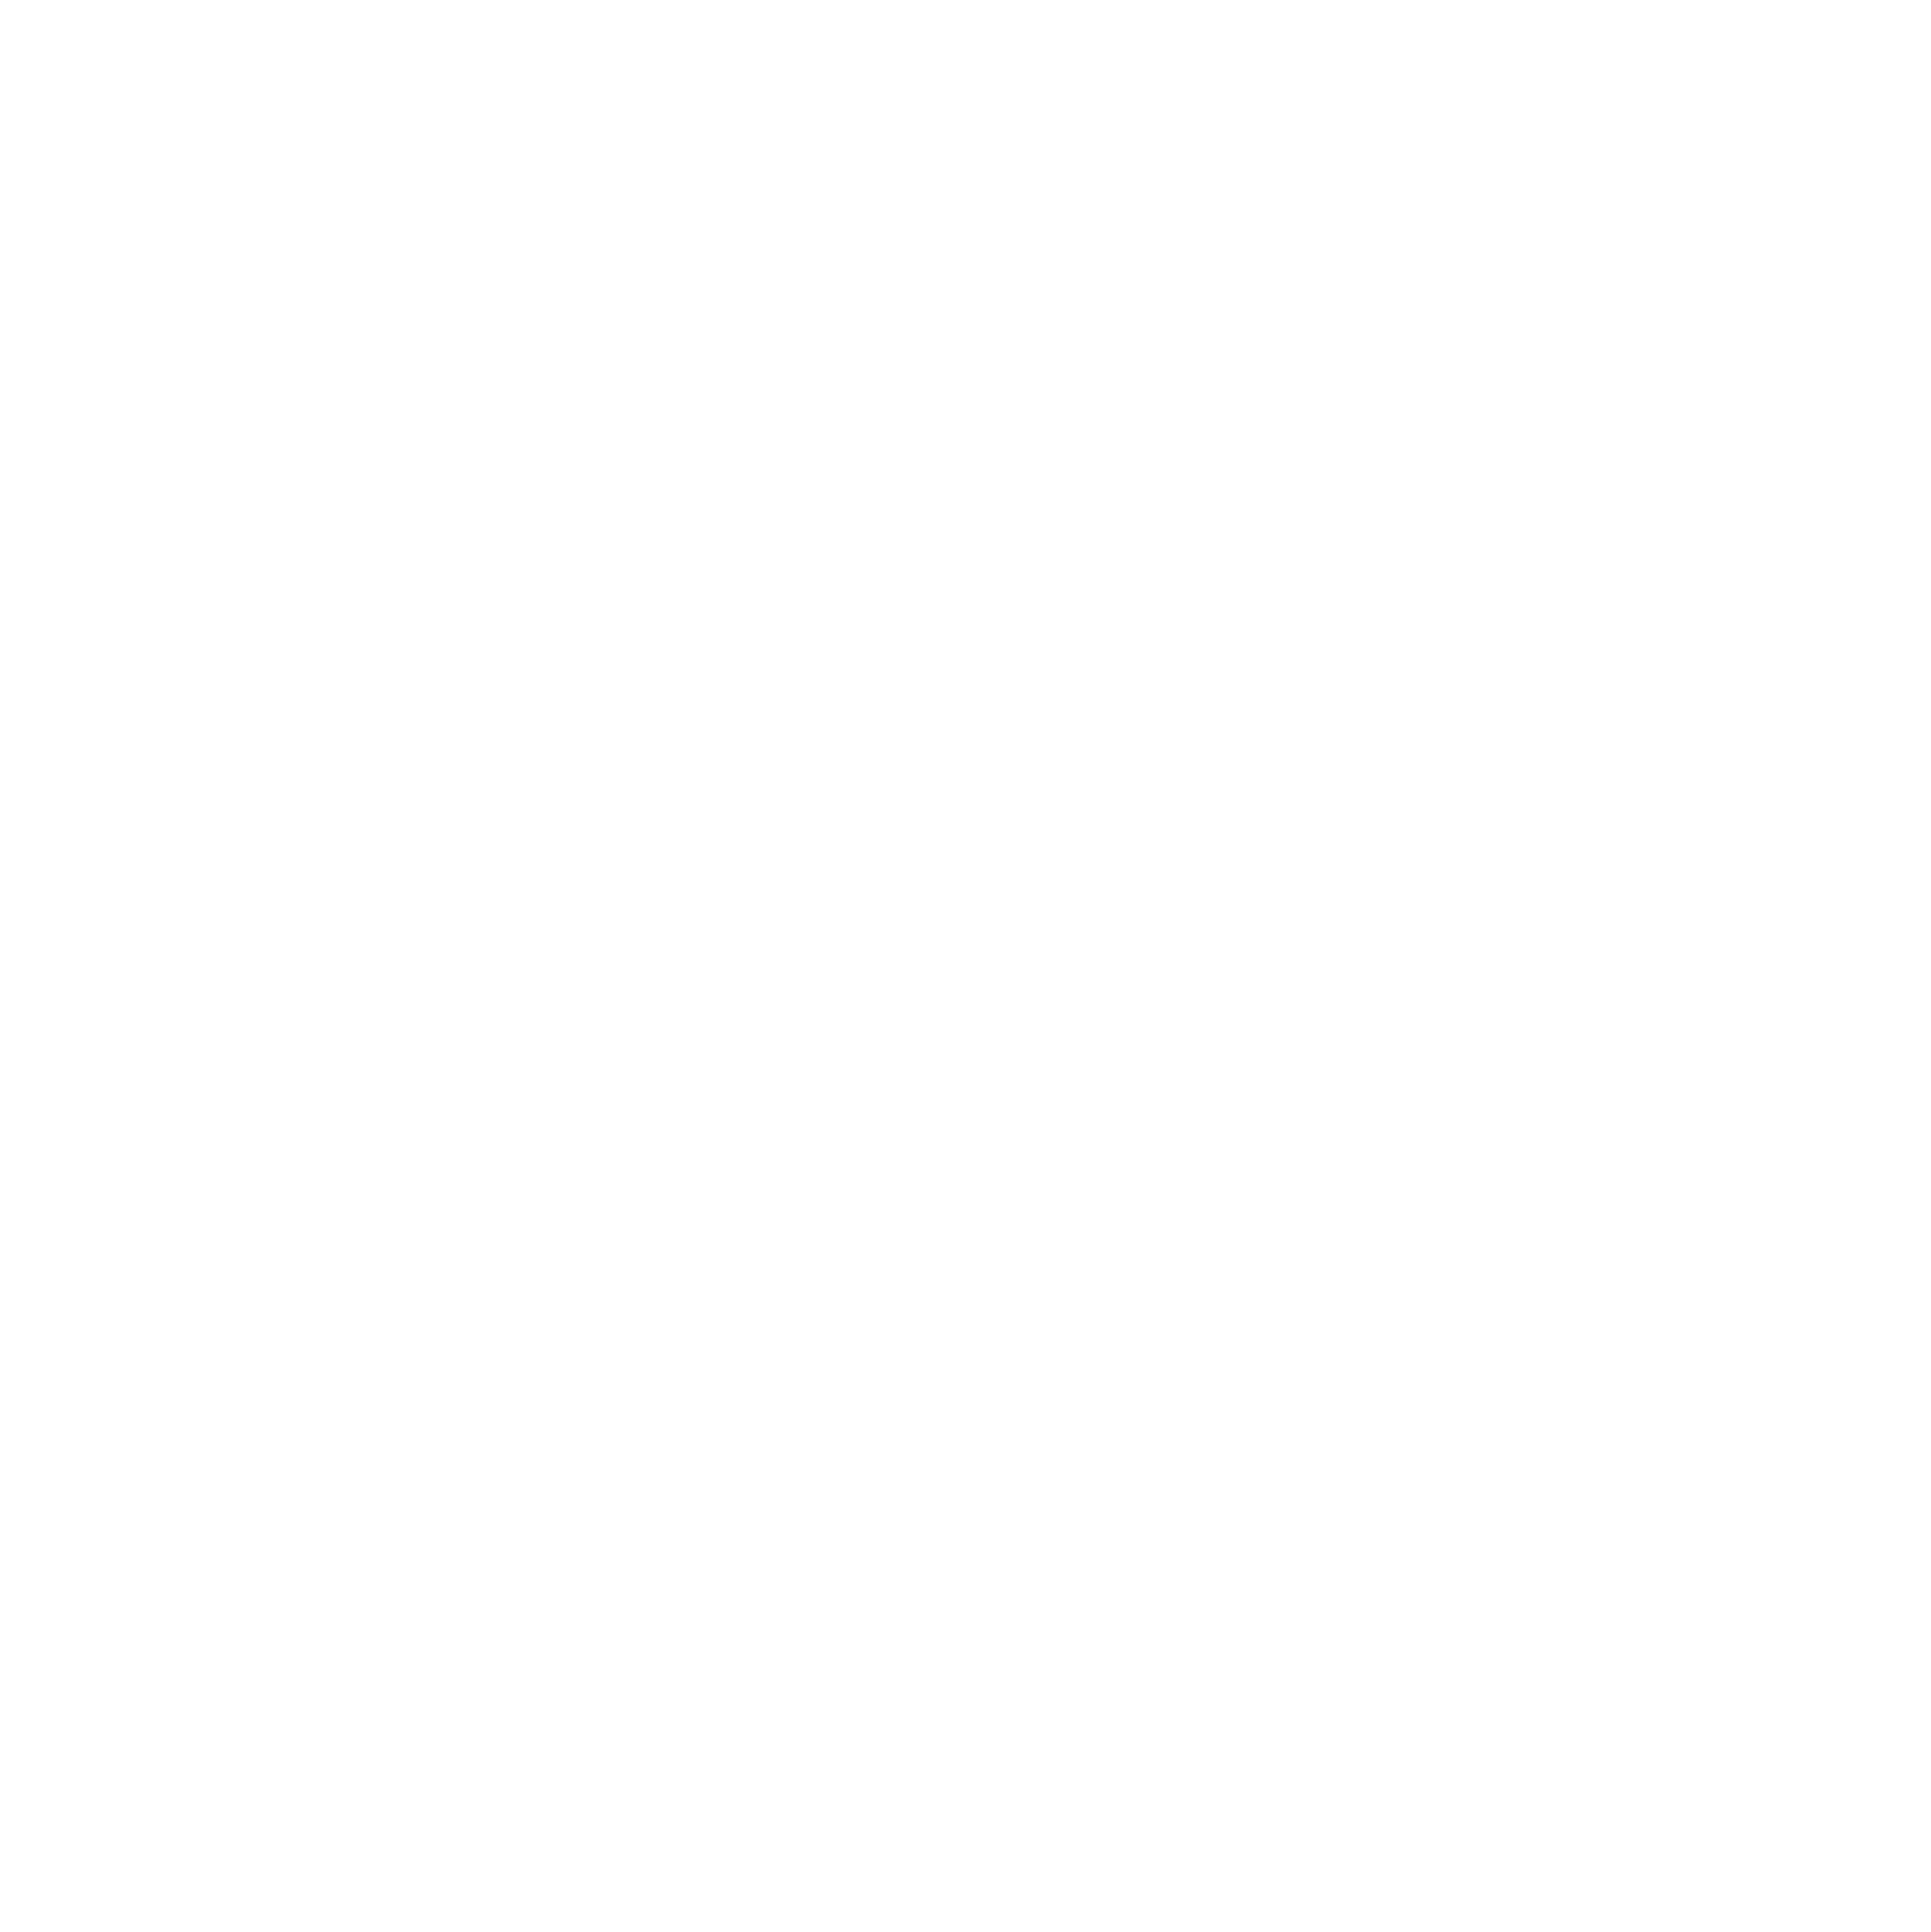 I Can for Kids